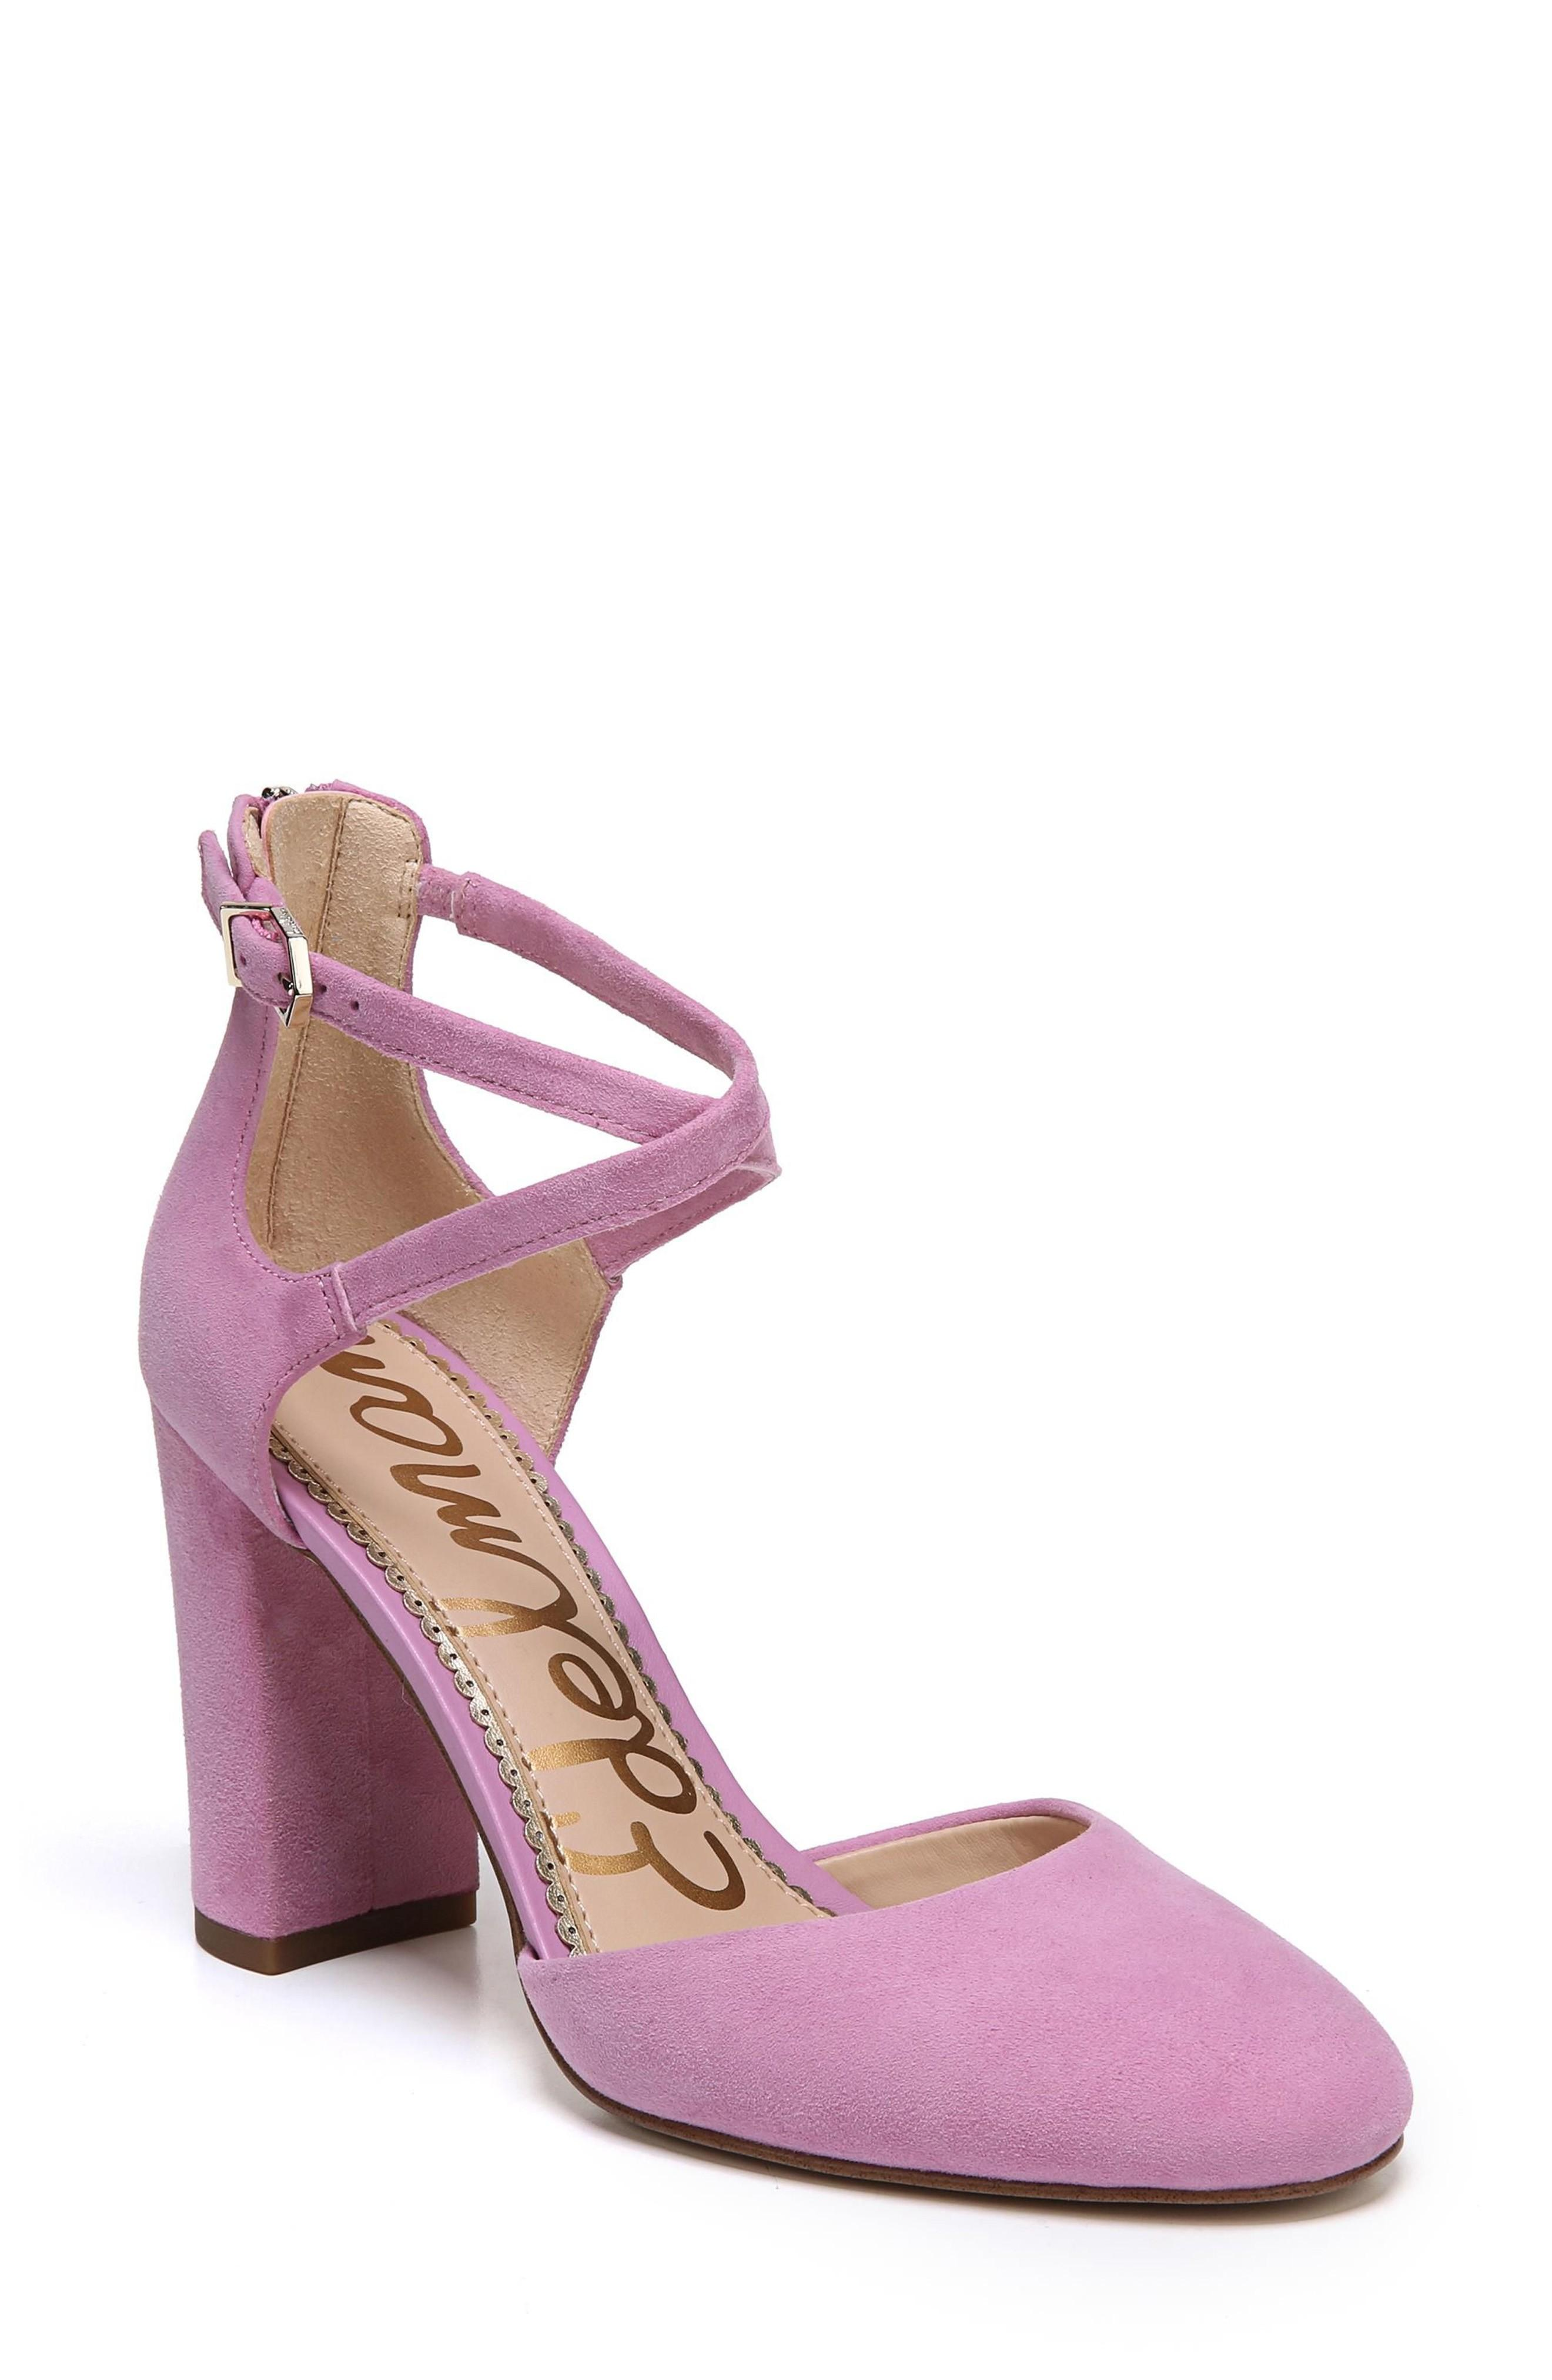 52c25747600def Sam Edelman Simmons Suede Ankle-Strap Sandals In Fiji Pink